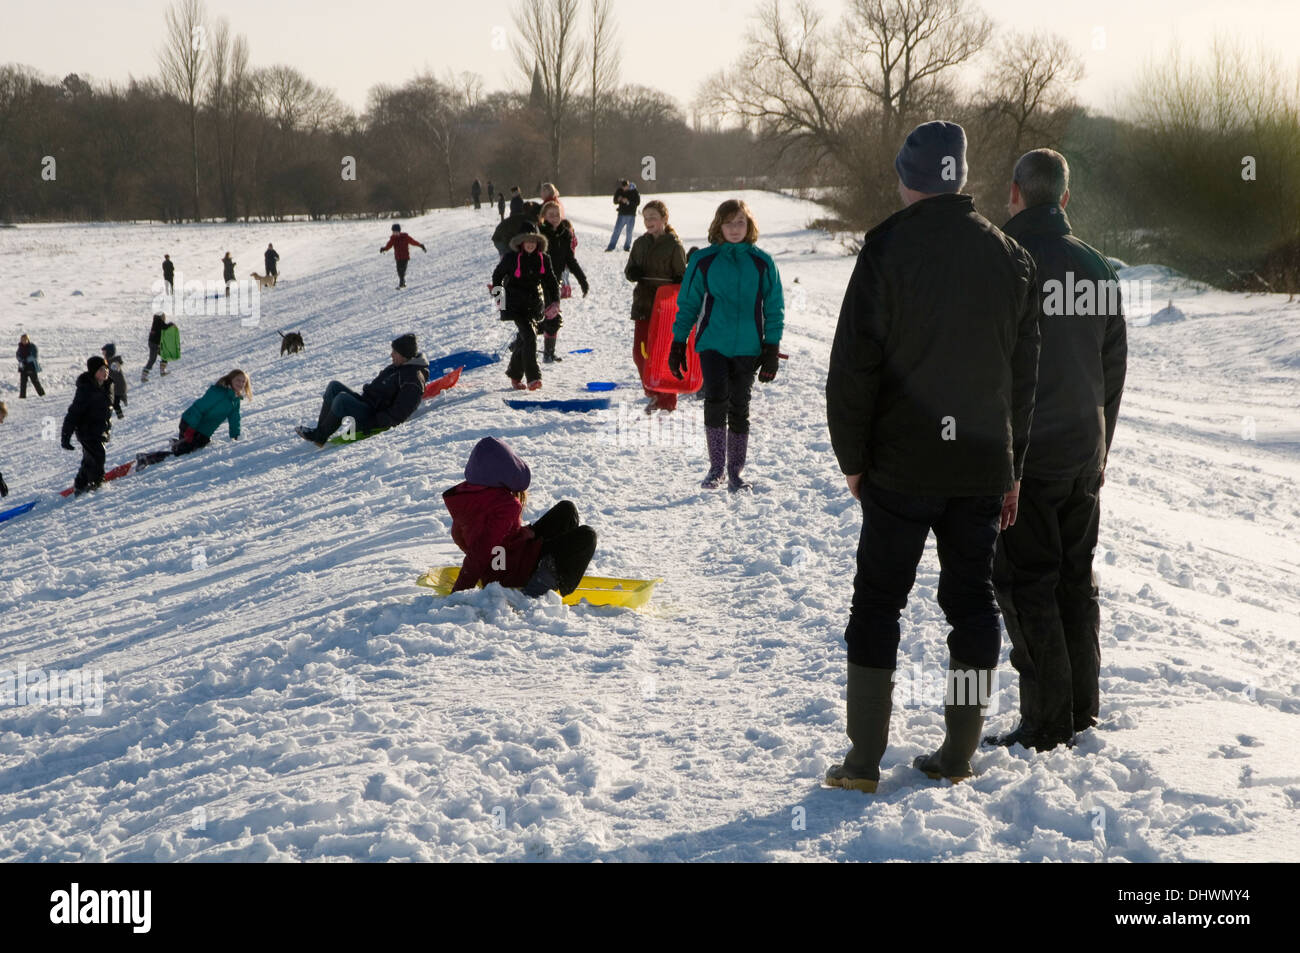 york weather. Stock Photo - Cold Weather Uk Snow Snowy In Yorkshire Children Sledging On Terrington Bank Near York Sledge Sledges Kids Snowing Snowed H S